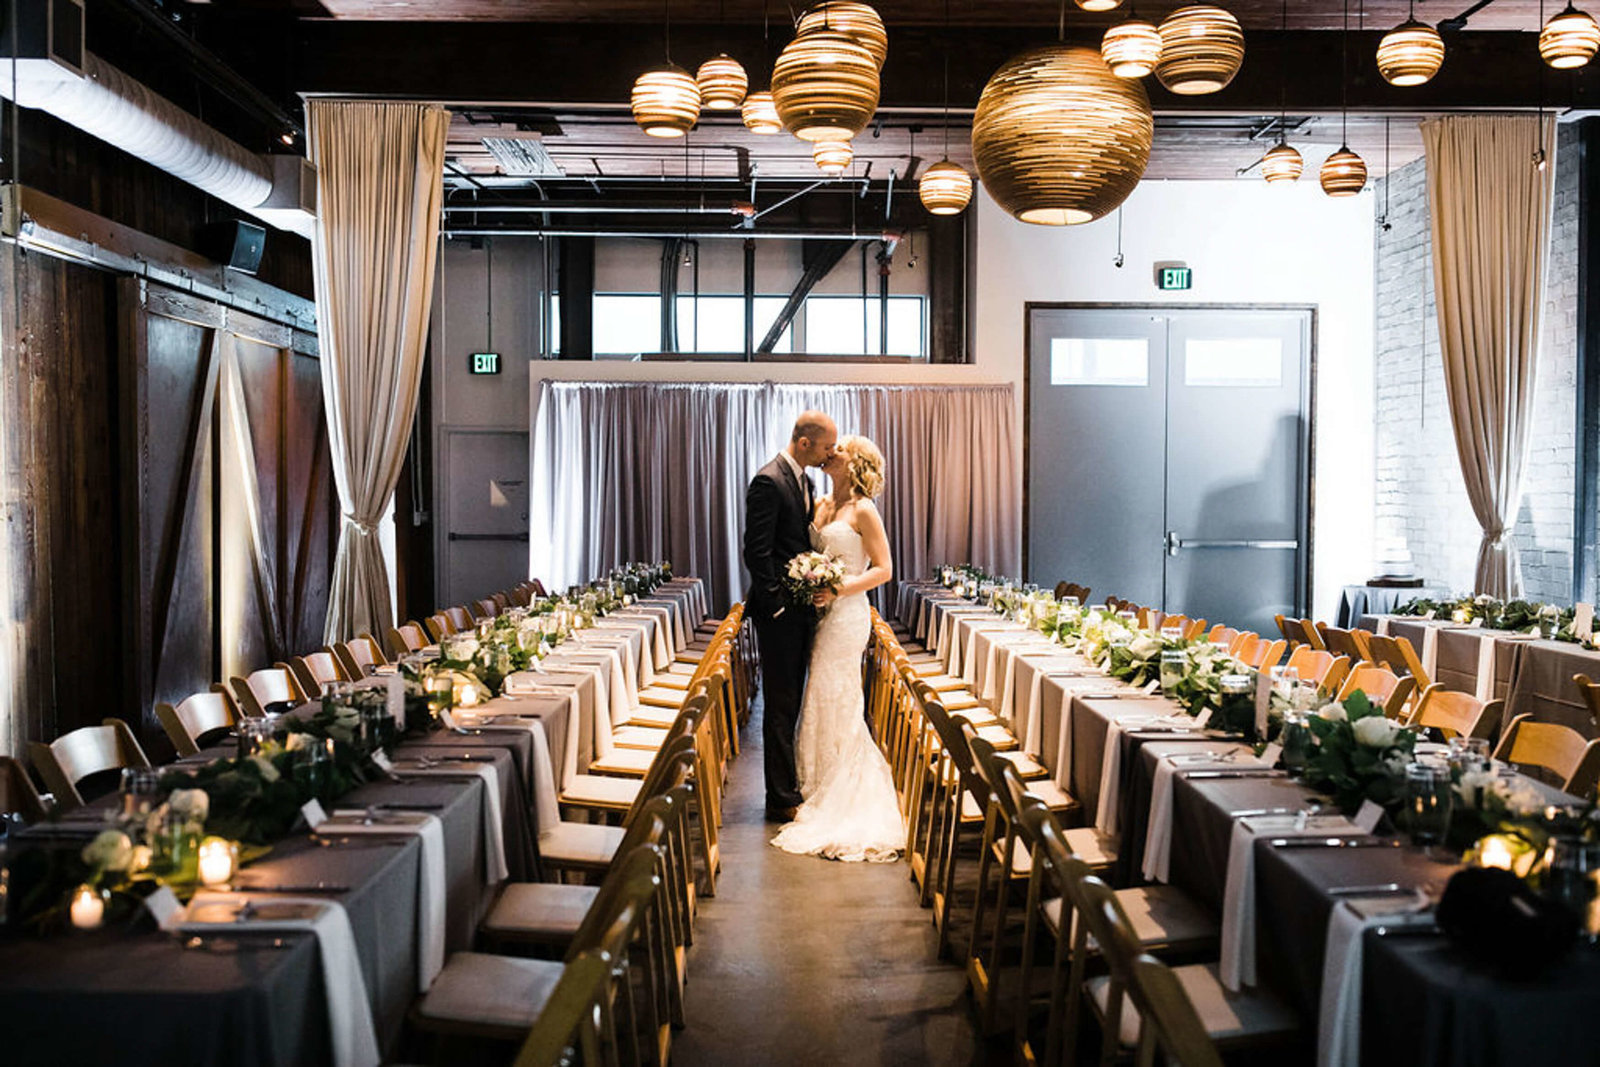 Amy+Clint_Within_Sodo_wedding_seattle_by_Adina_Preston_Weddings_654